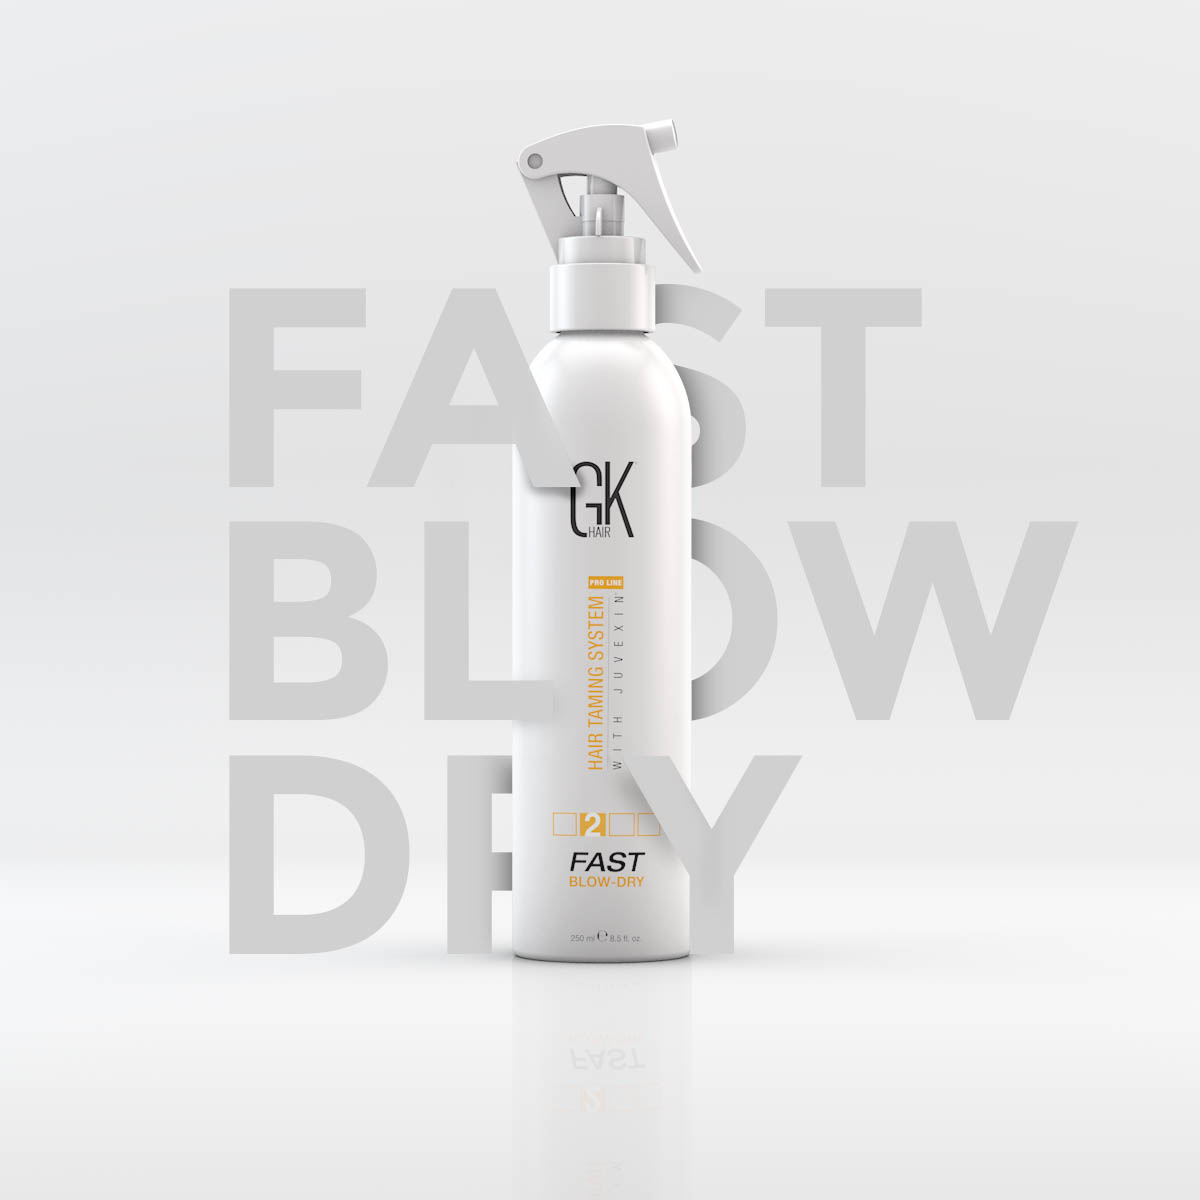 Fast Blow Dry